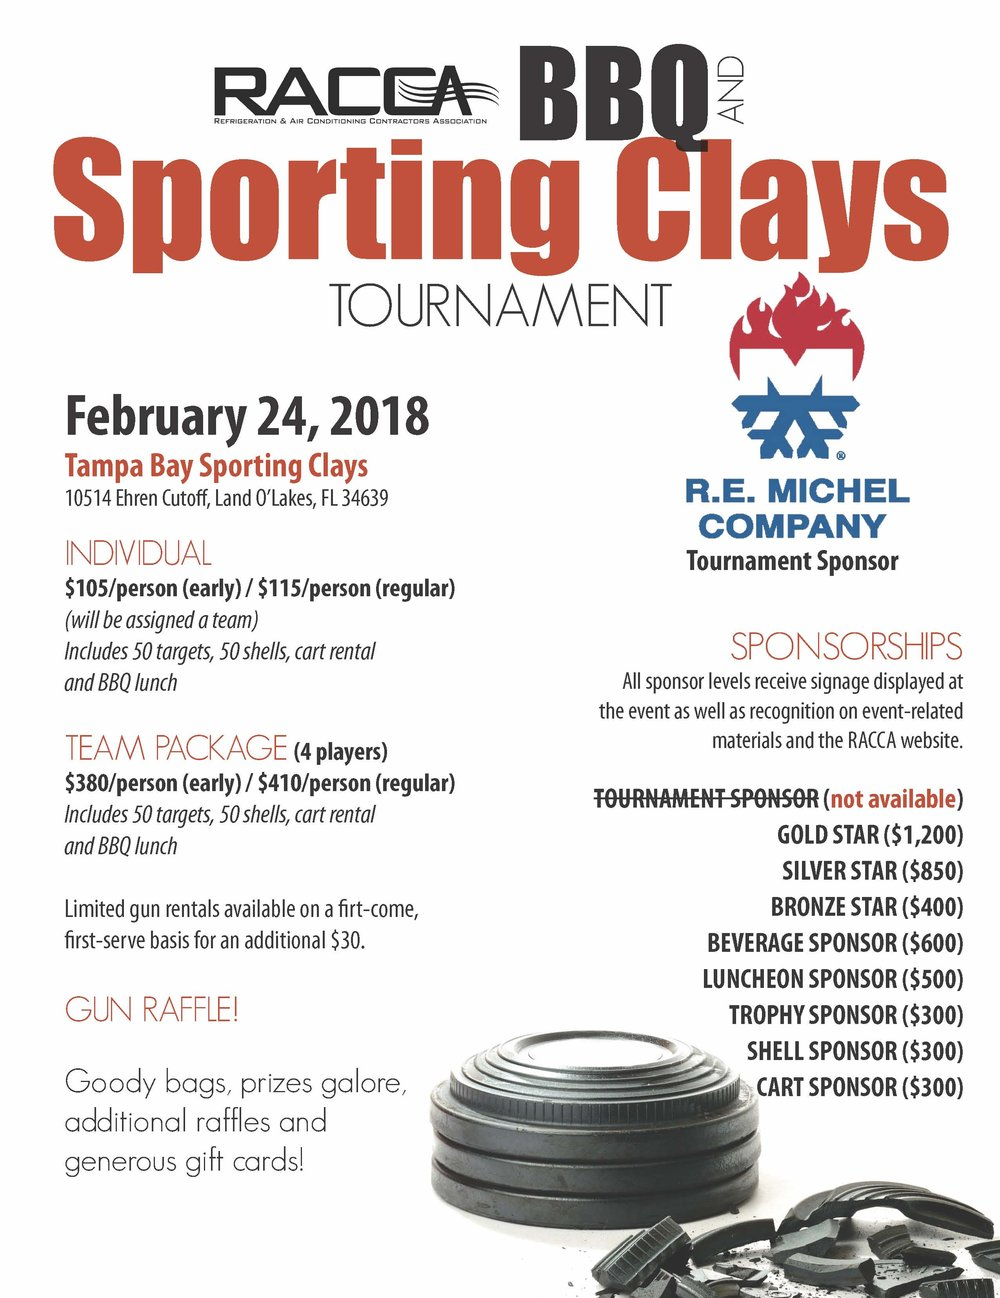 RACCA_sporting_clays_12_20_17_participant_form_Page_1.jpg